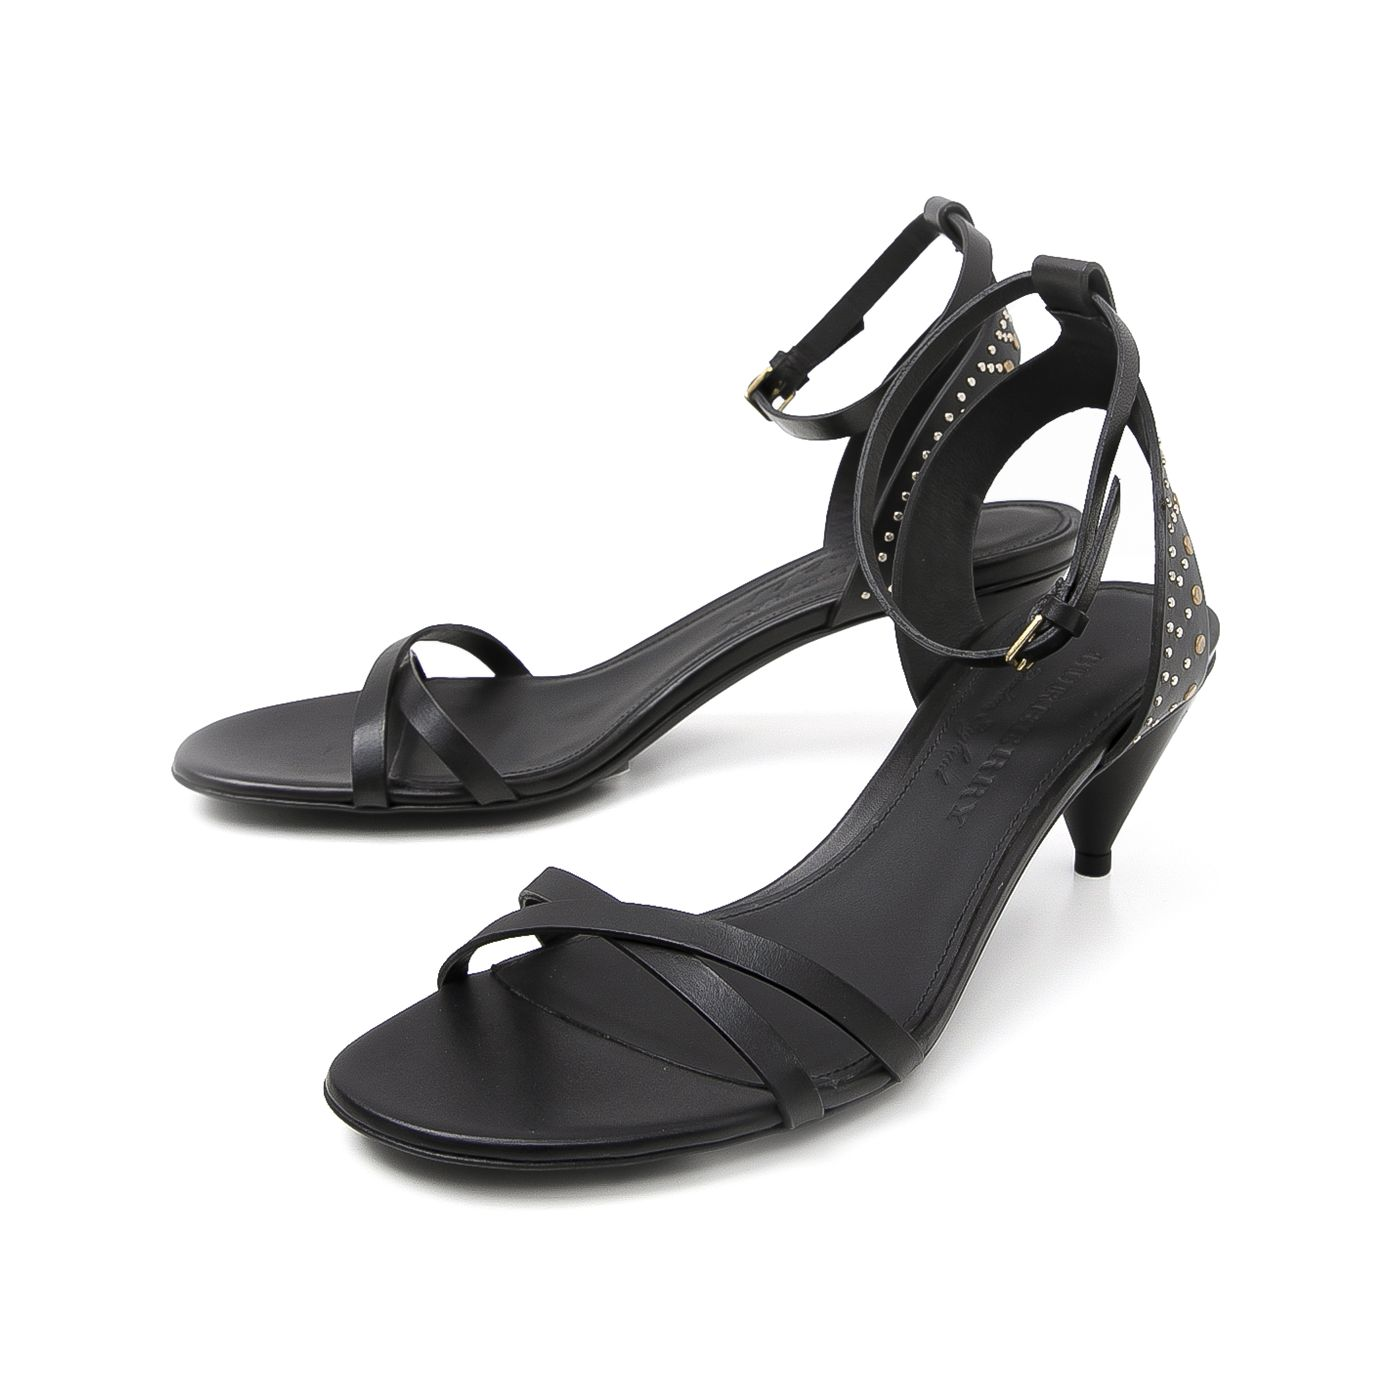 Burberry Black Hansel with Studs on Ankle Sandals 38